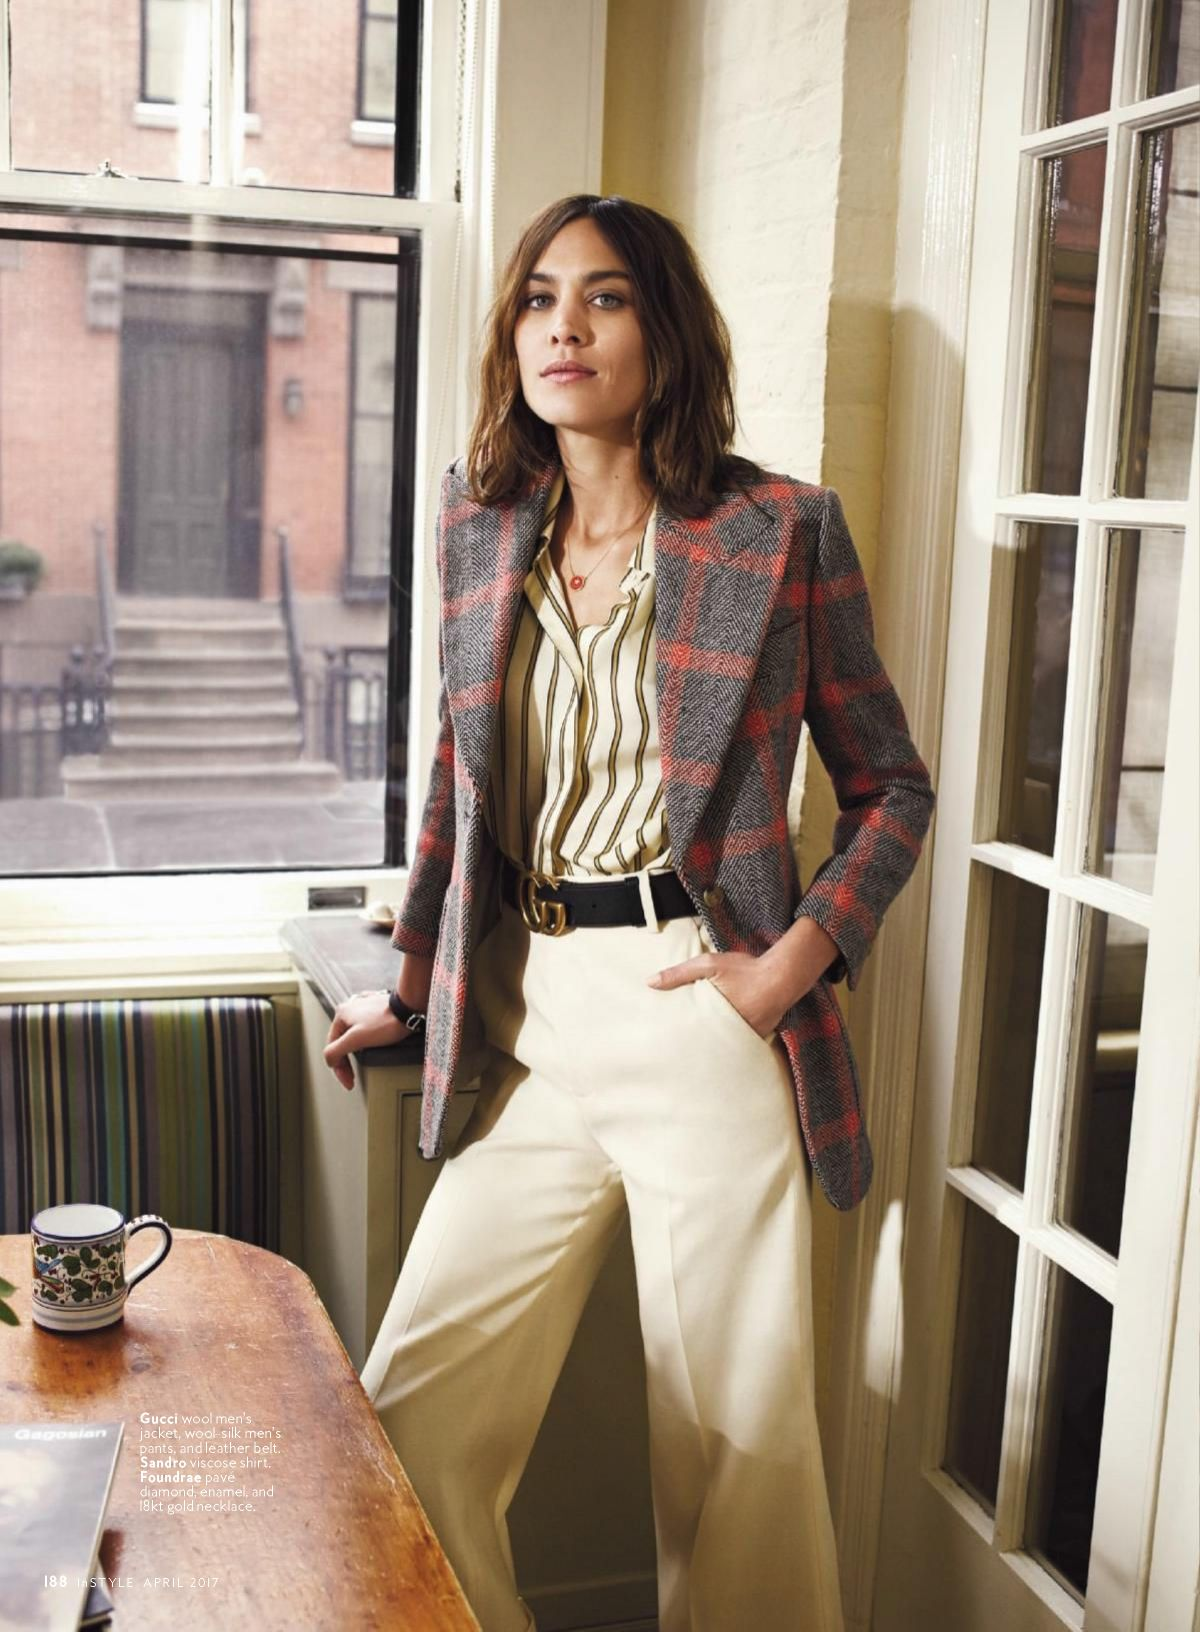 ALEXA CHUNG in Instyle Magazine, April 2017